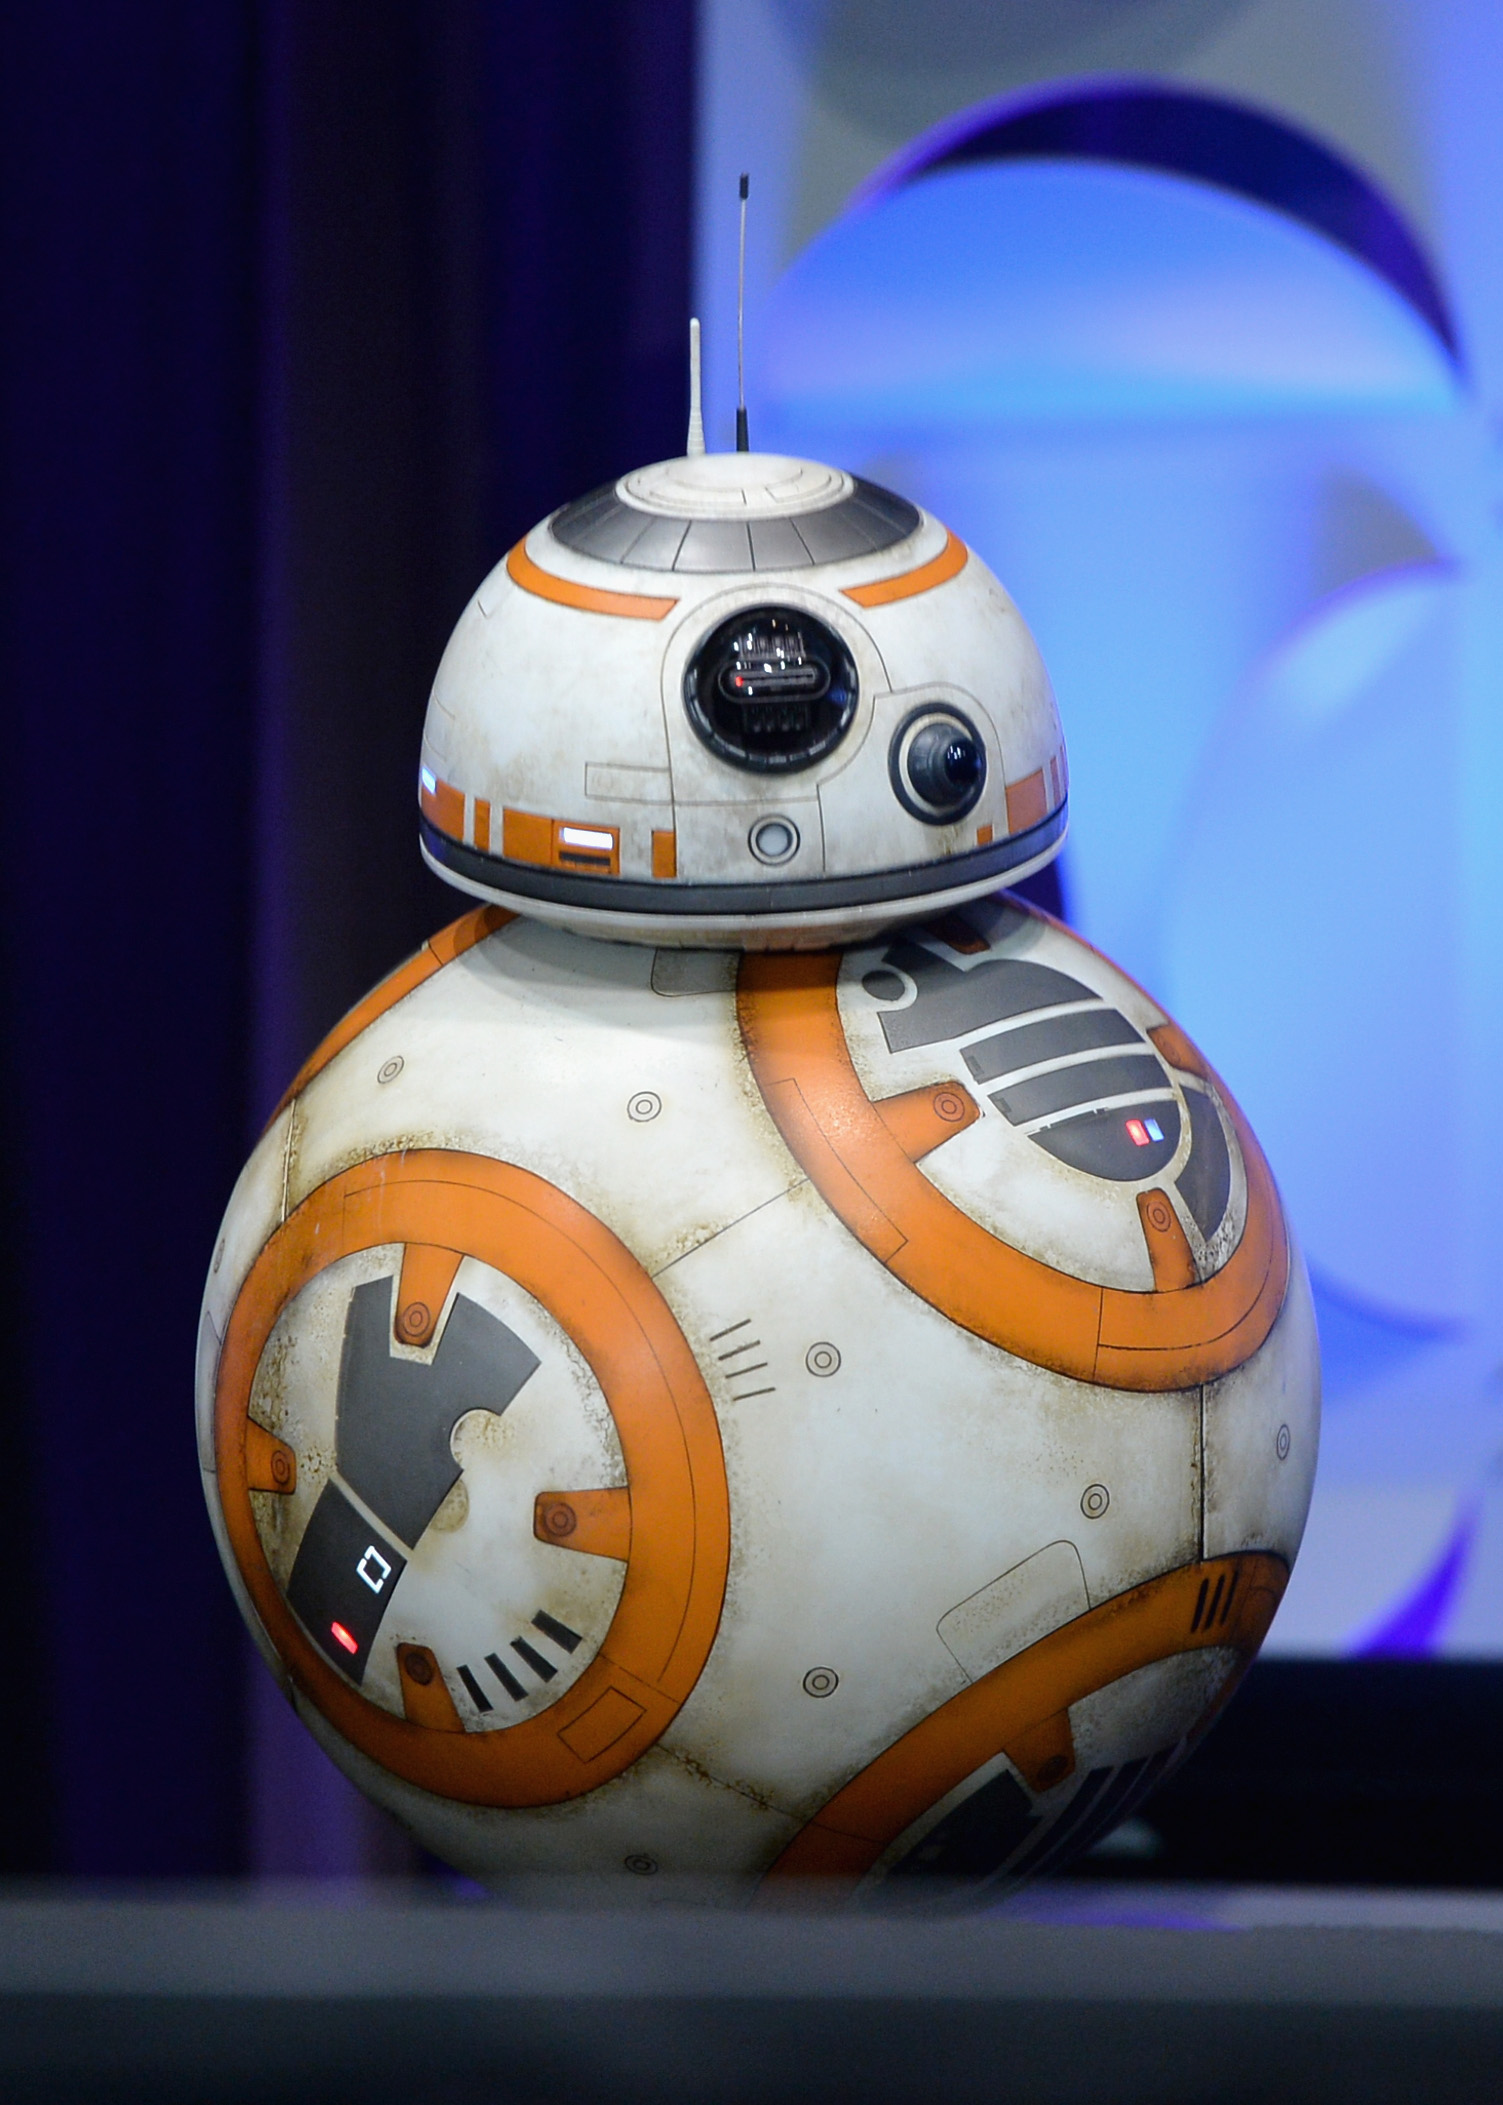 BB-8 onstage during Star Wars Celebration 2015 on April 16, 2015 in Anaheim, California.